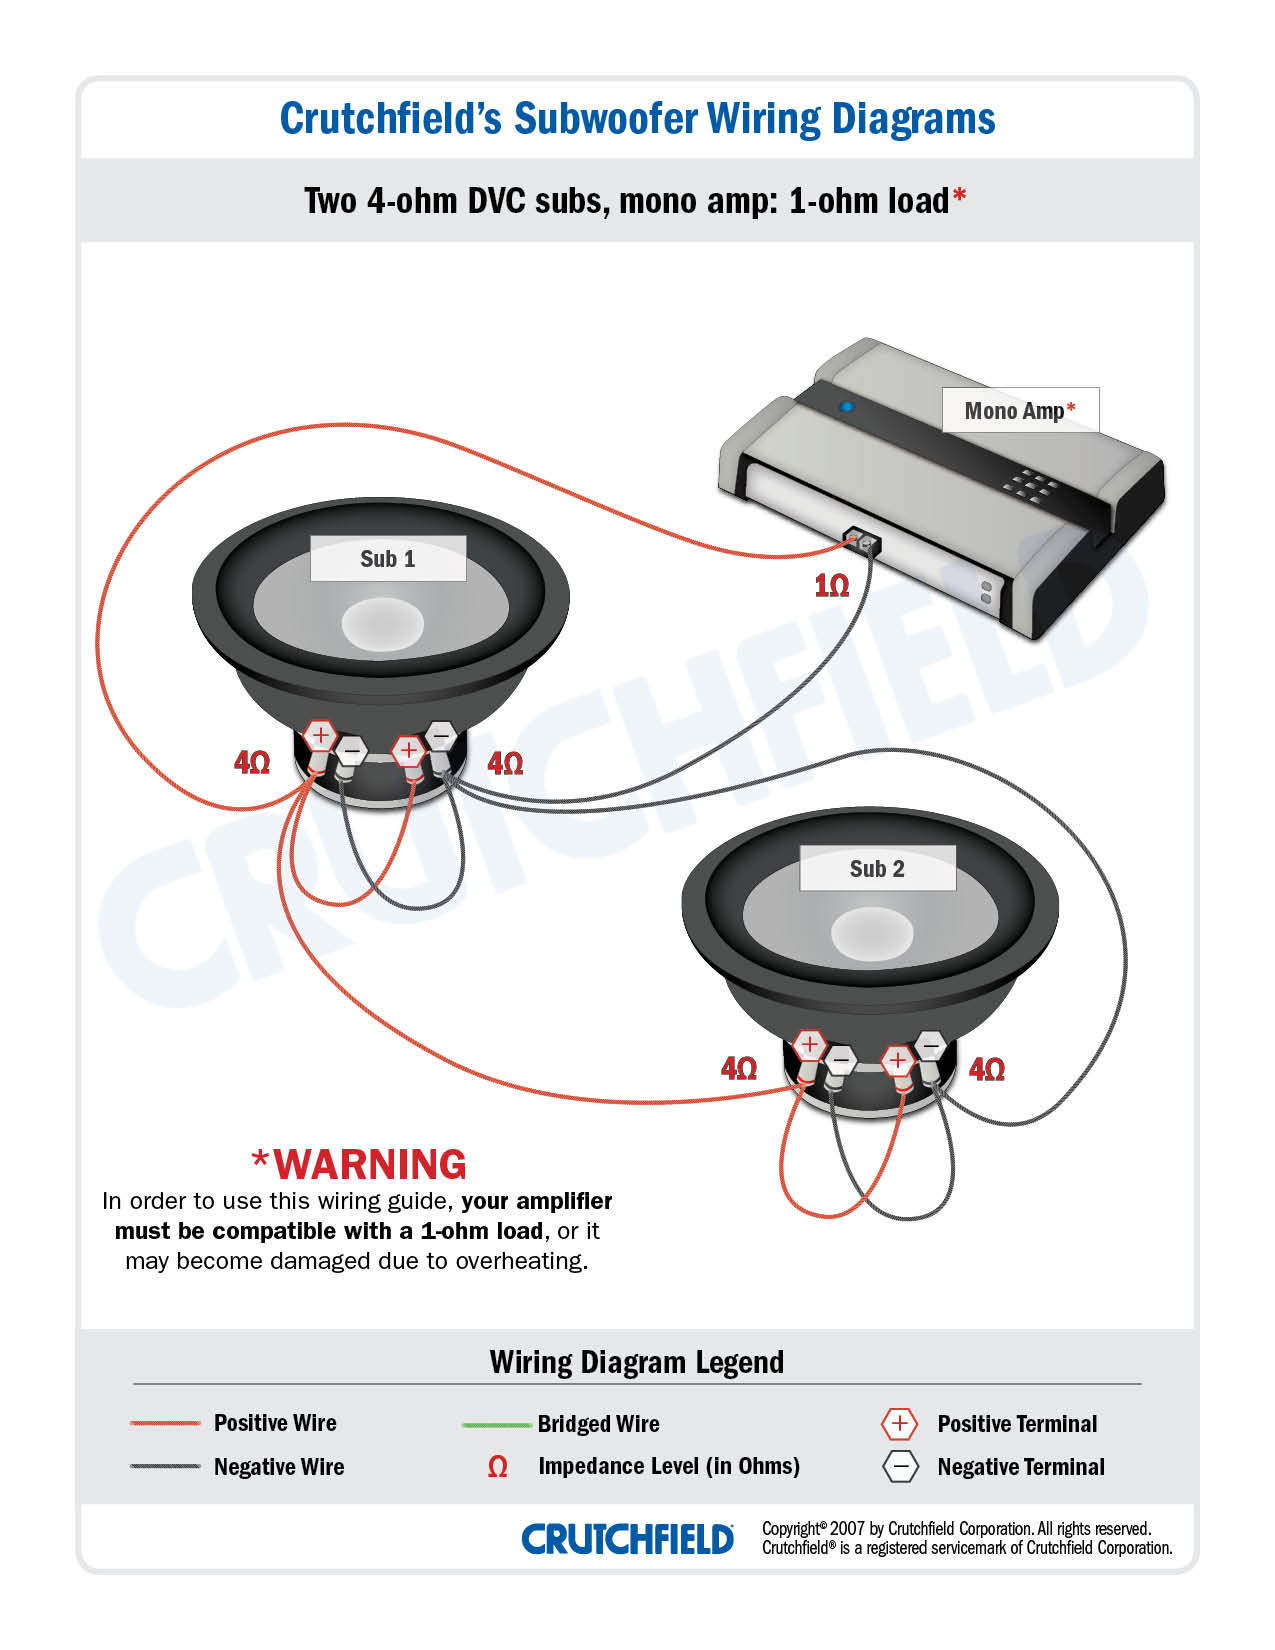 hight resolution of a great match for those subs would be a pioneer gm d8601 which can put out 800 watts rms the subs exact rms rating when wired like this diagram